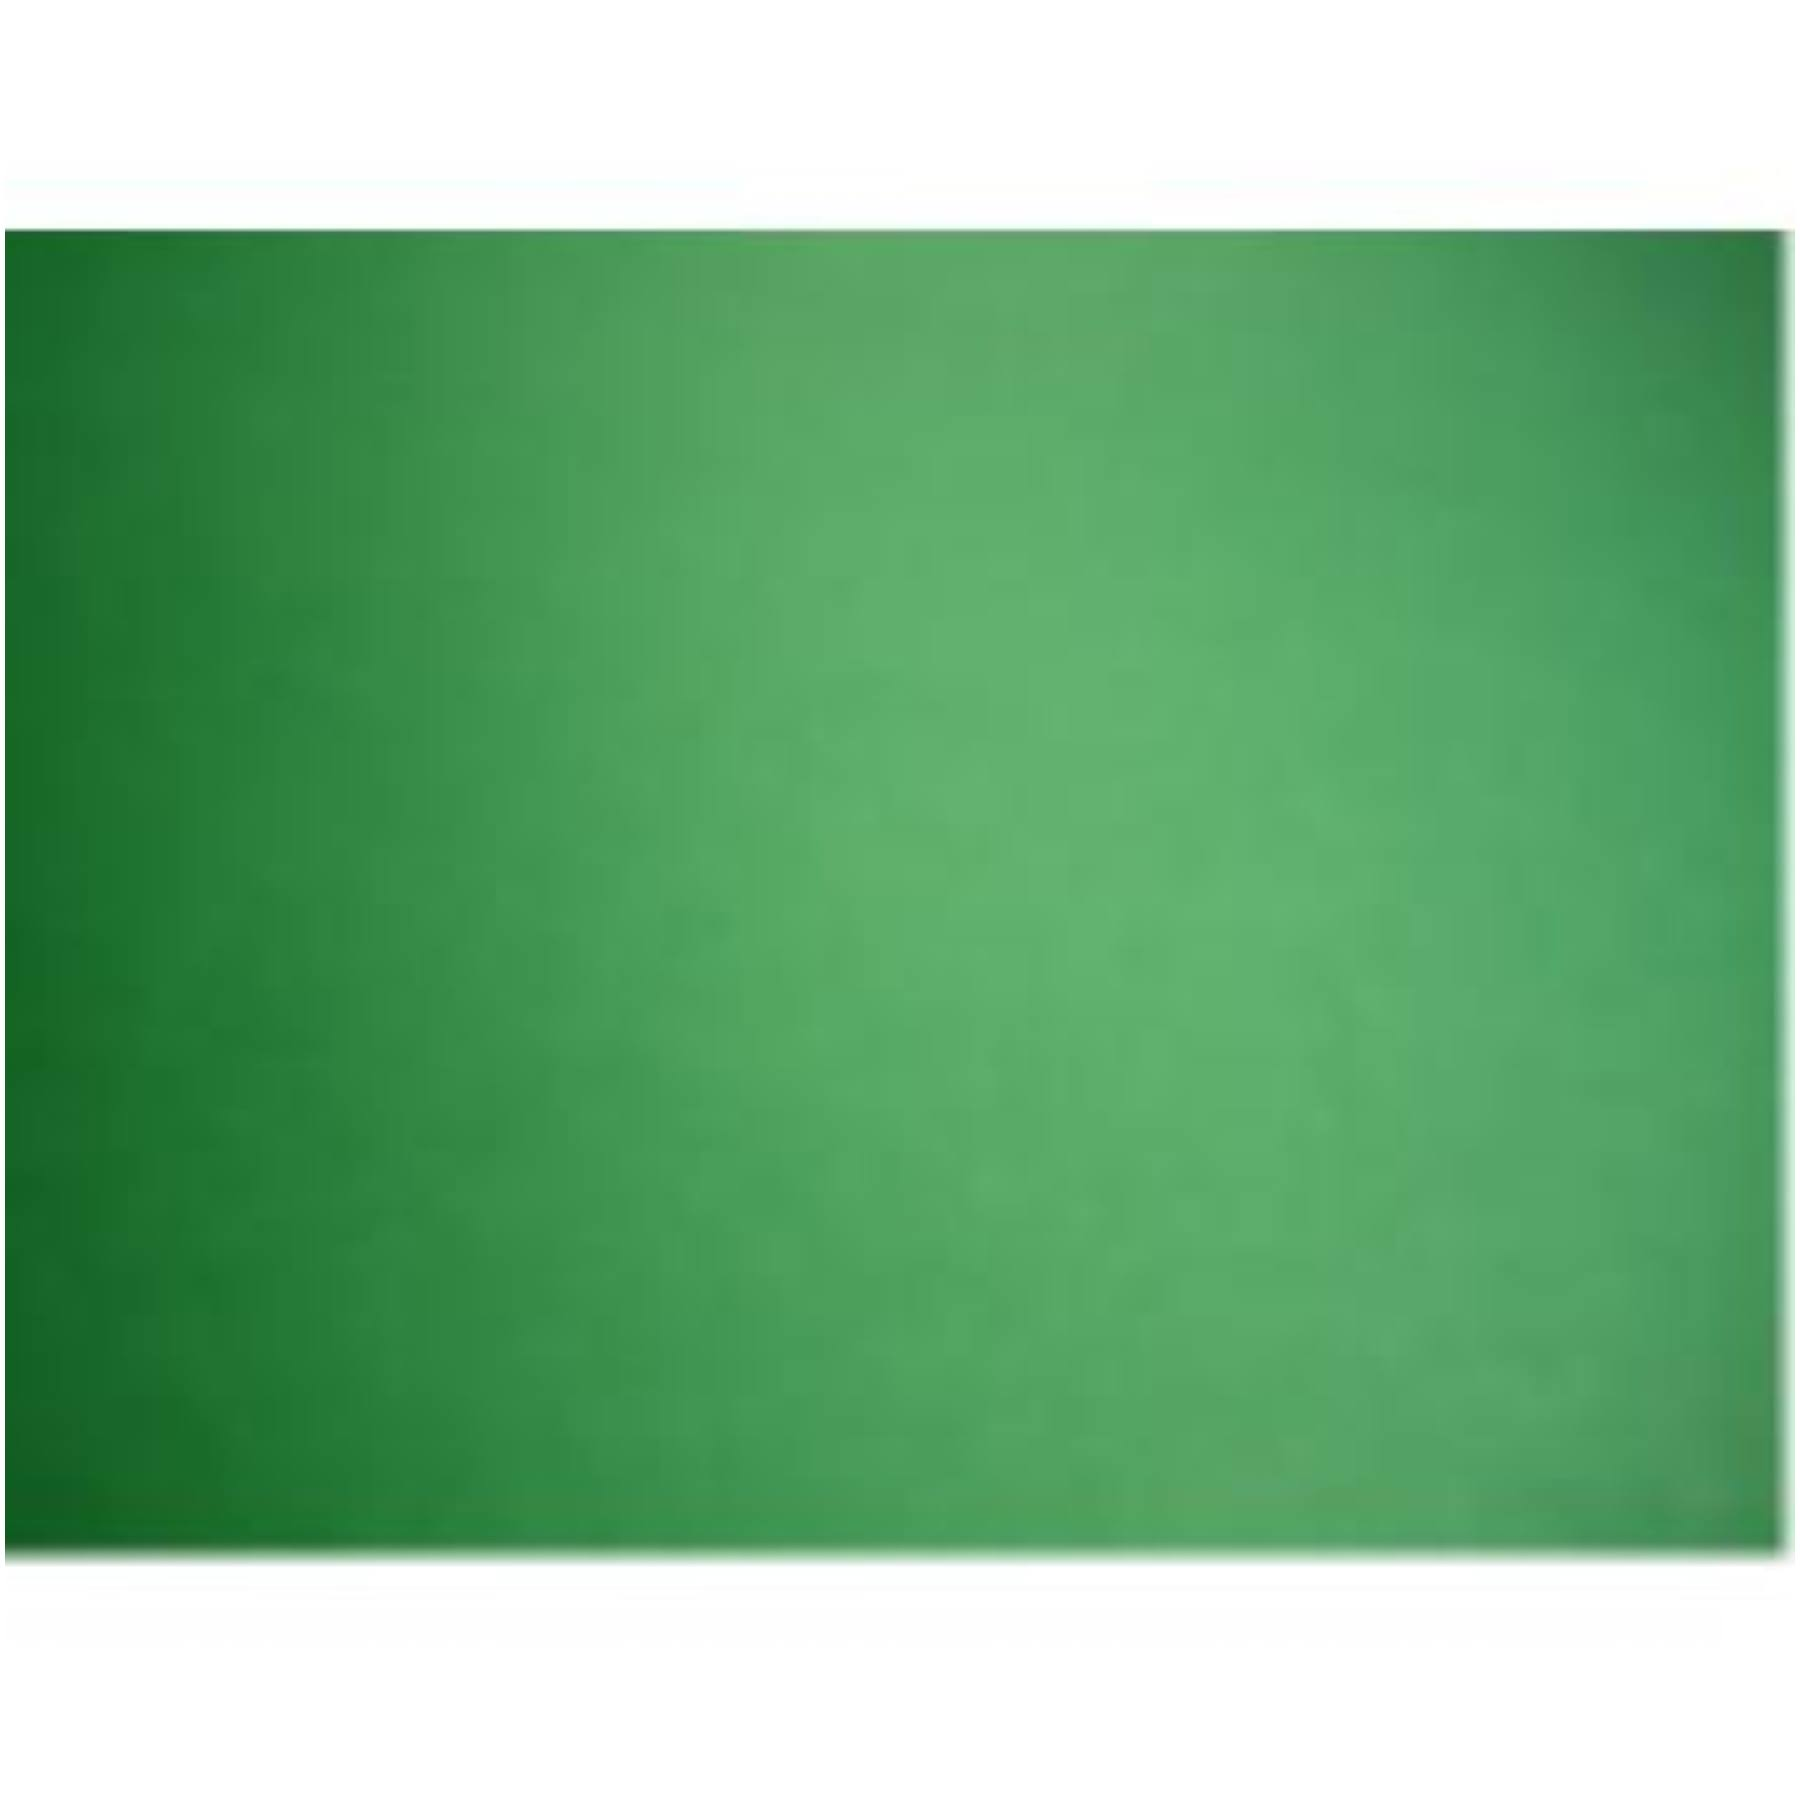 "Posterboard - Dark Green - 22"" x 28"" Case Pack 50"